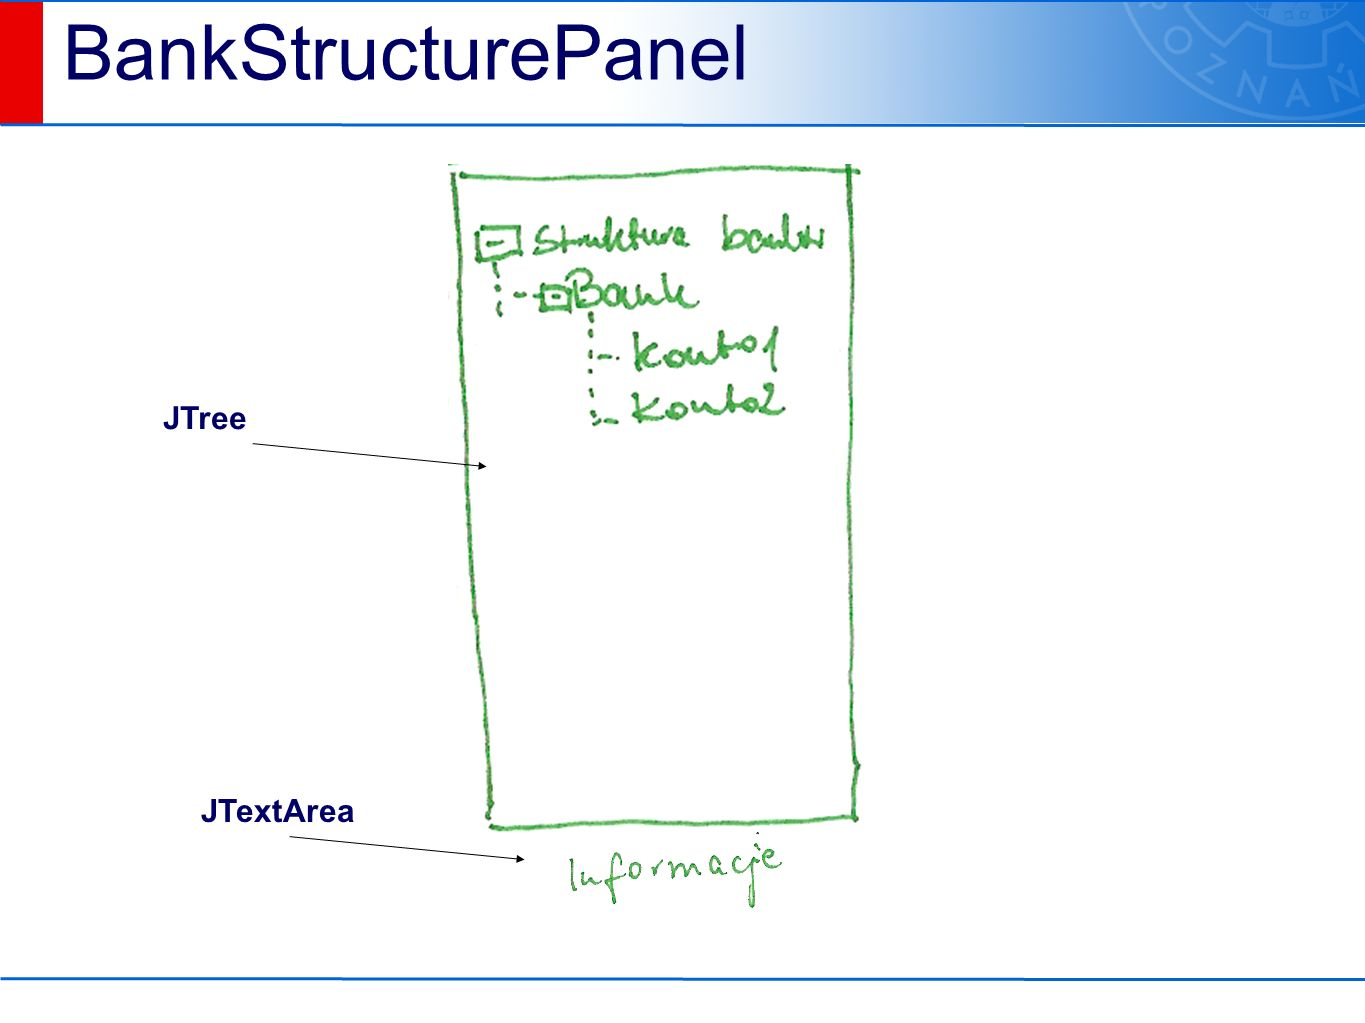 BankStructurePanel JTree JTextArea